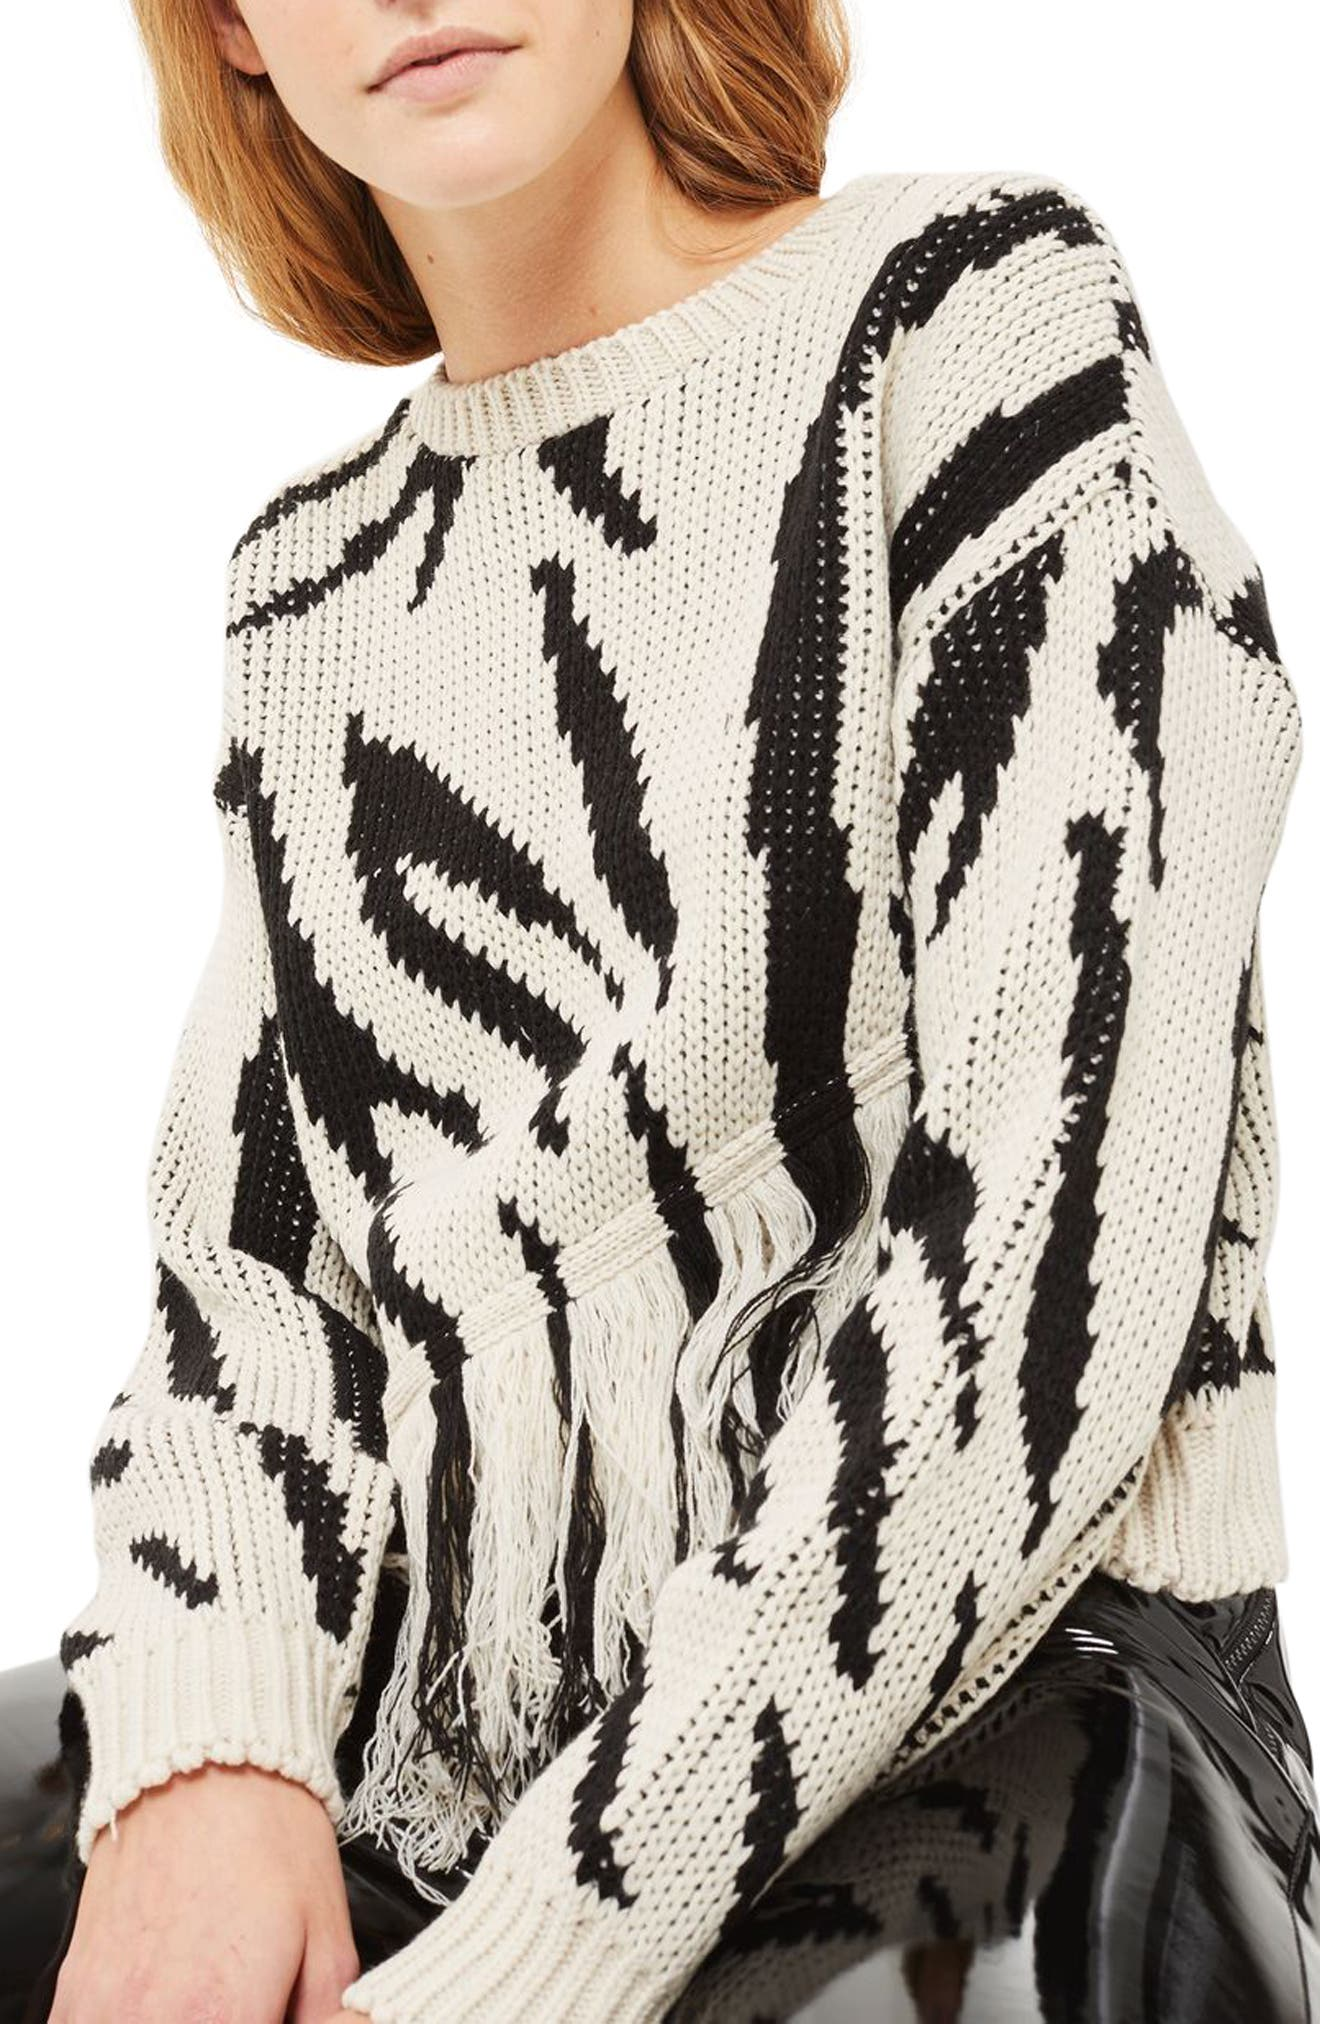 Alternate Image 1 Selected - Topshop Fringe Zebra Print Sweater